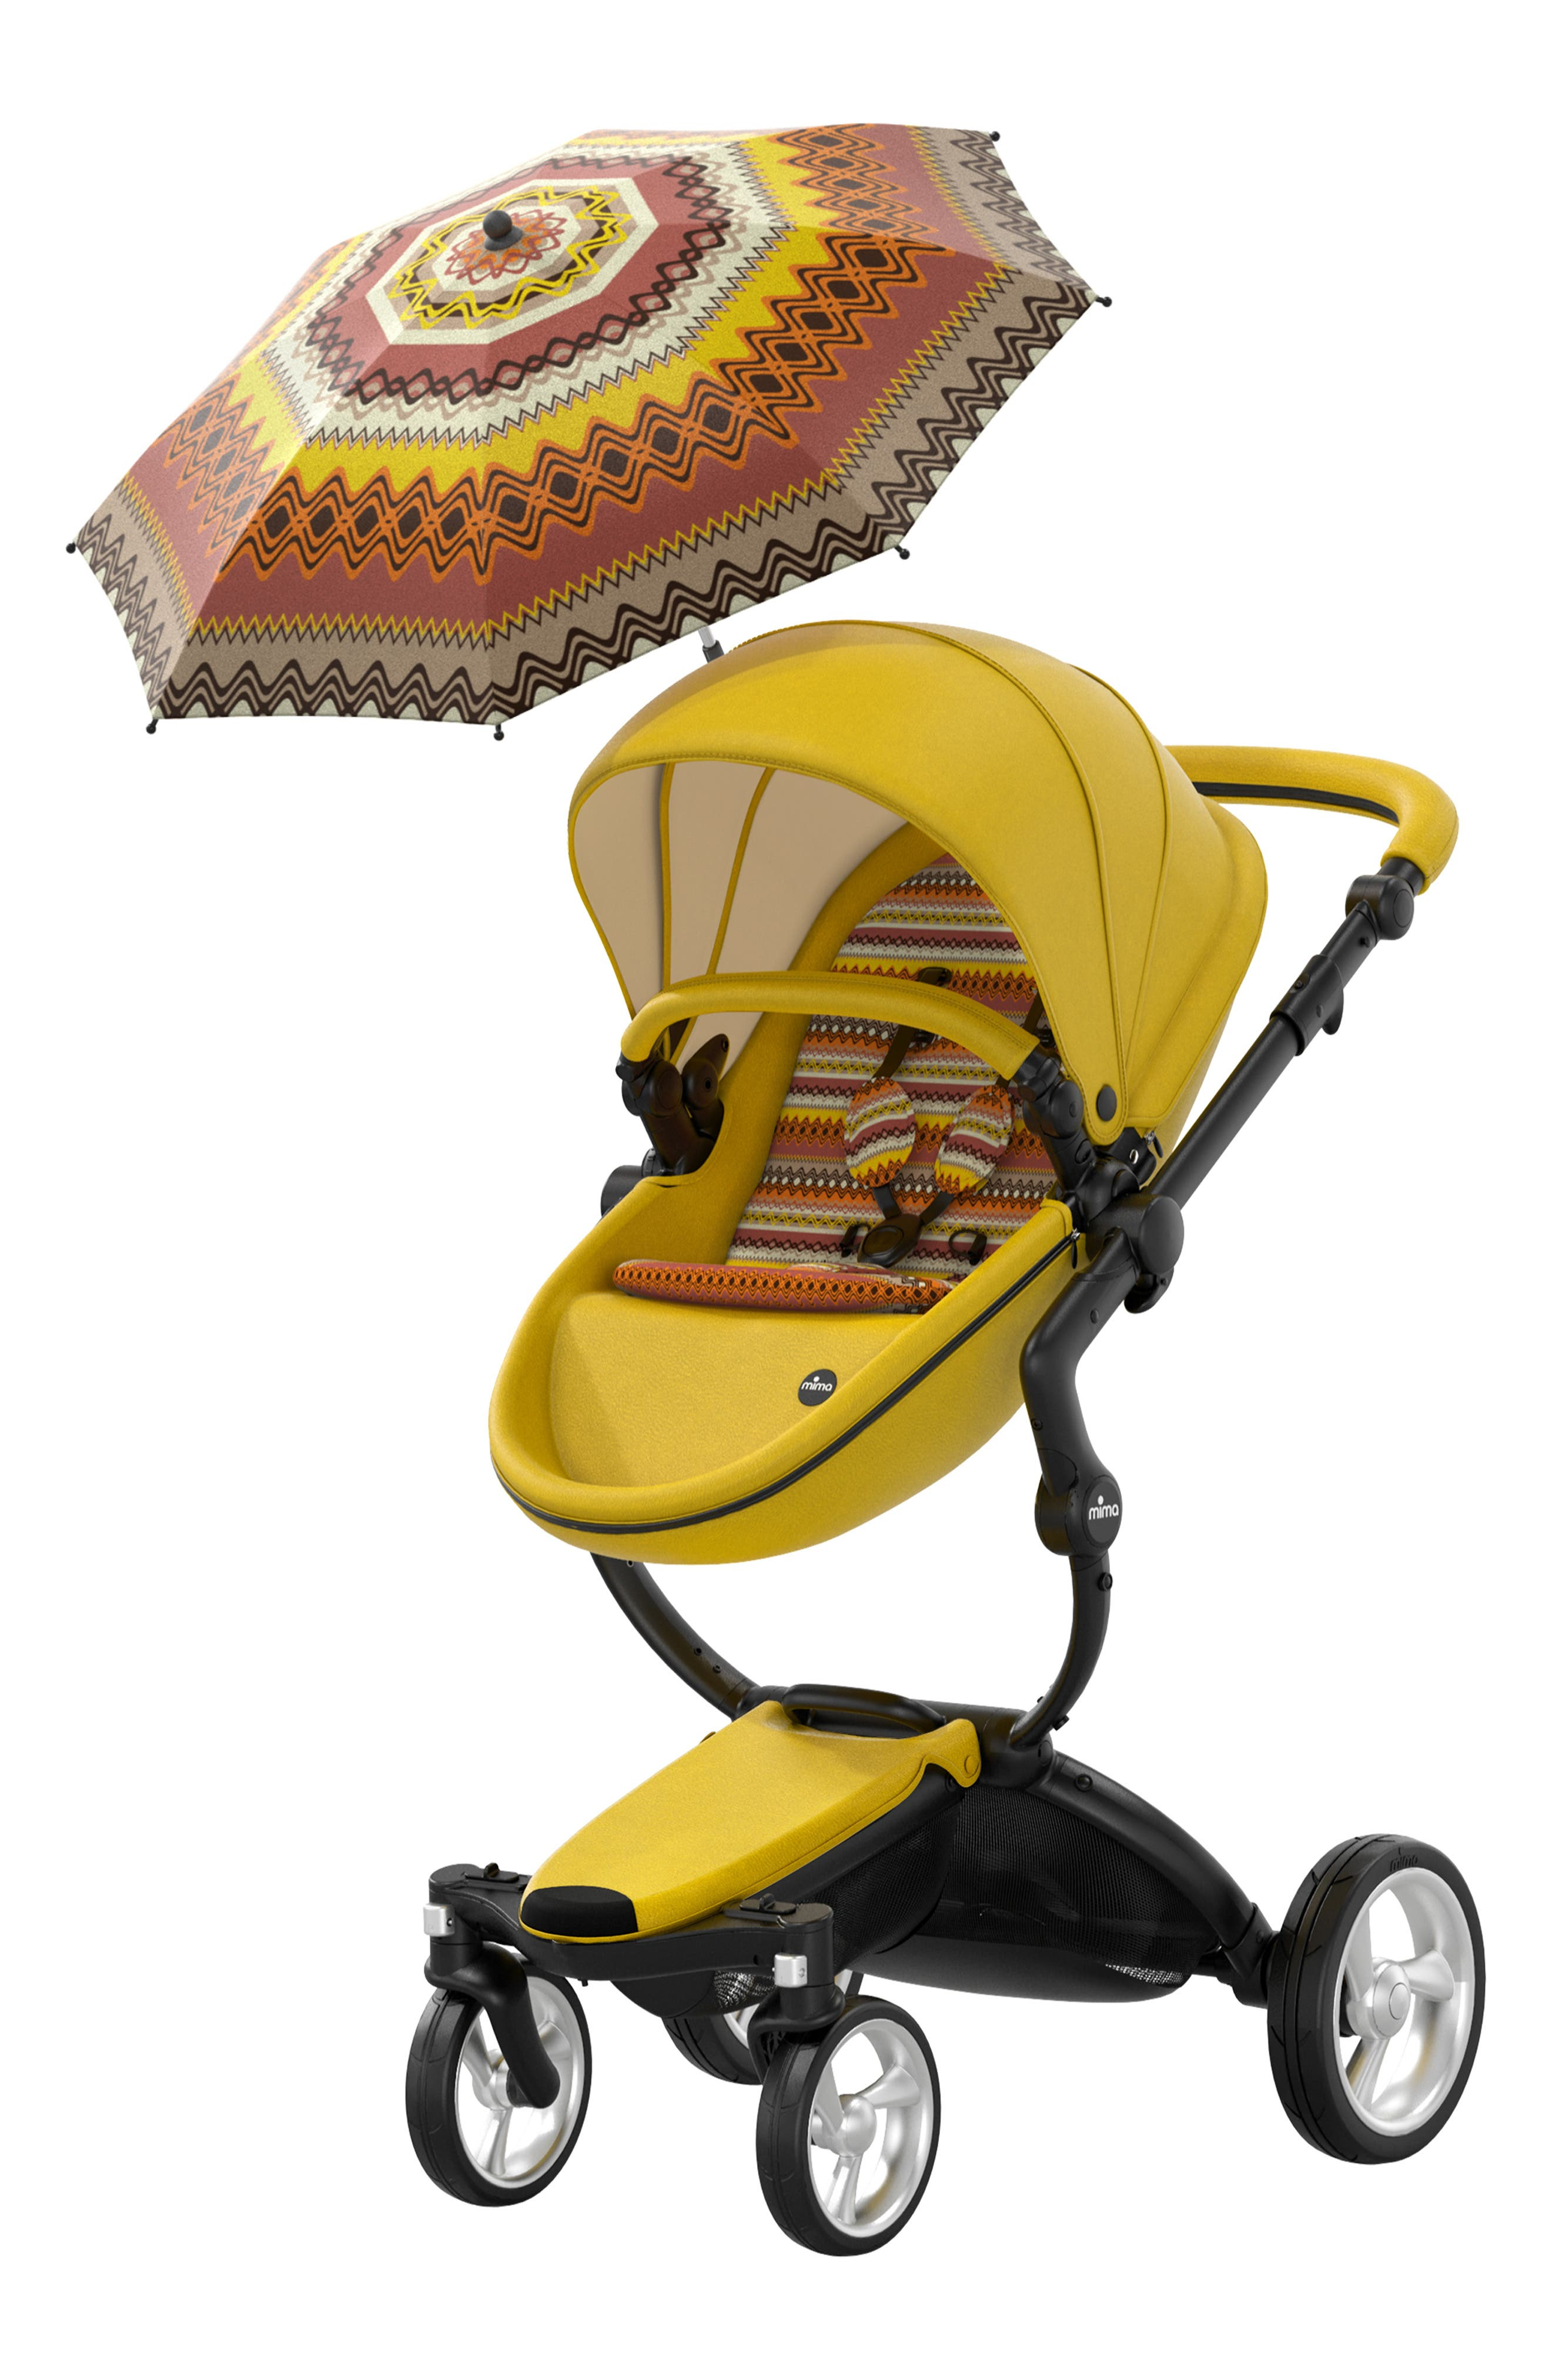 Xari Special Edition Chassis Stroller with Seat, Carrycot & Accessories,                             Alternate thumbnail 5, color,                             SPECIAL EDITION YELLOW